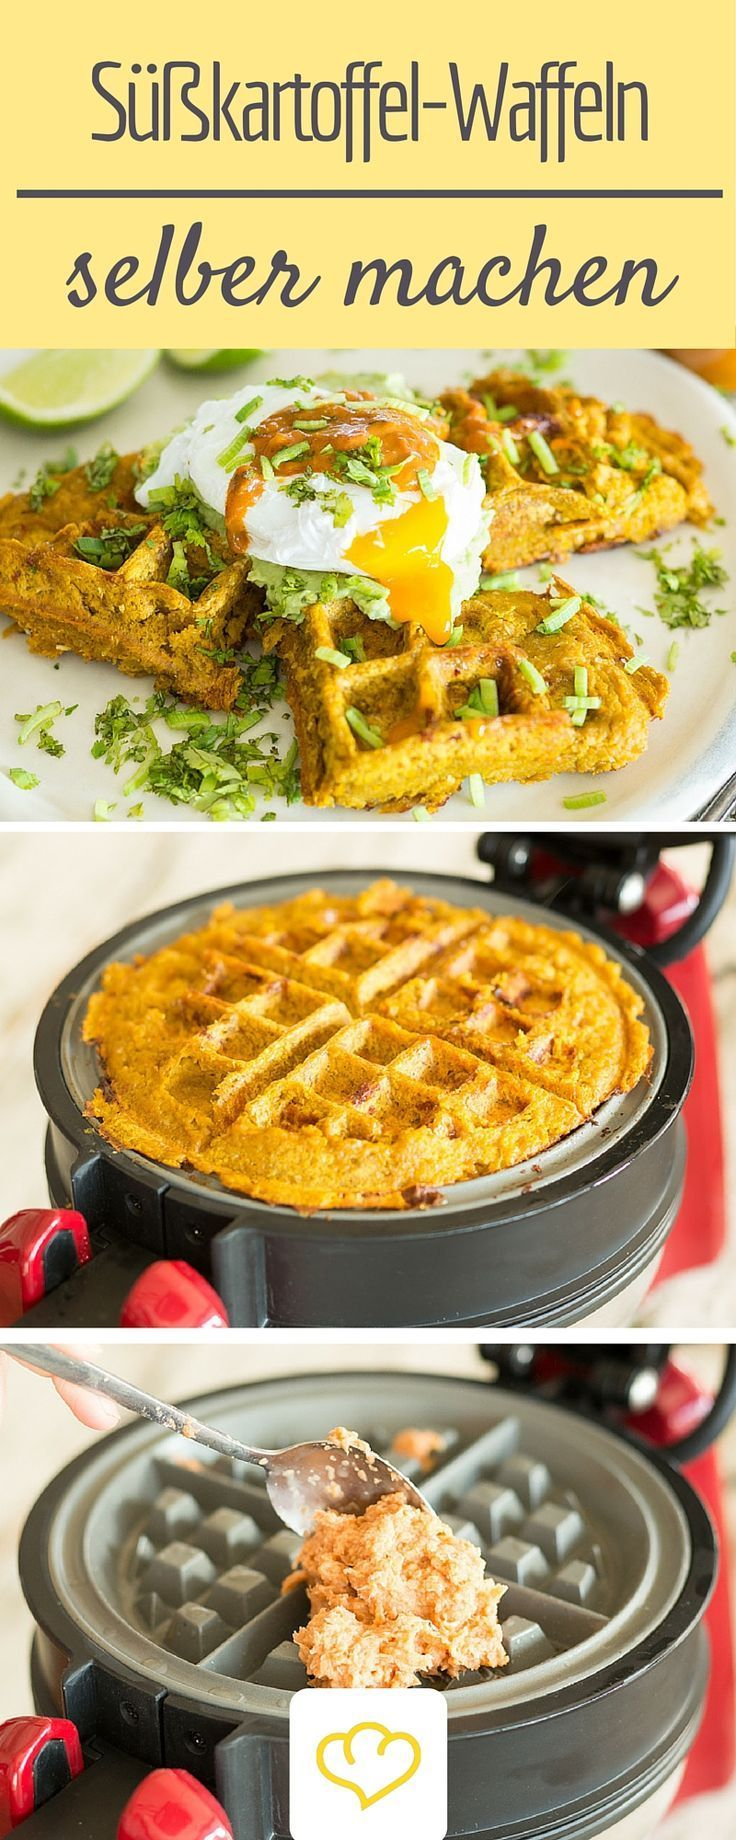 potato waffles with avocado cream and poached egg Sweet potato waffles with avocado cream and poached egg,Sweet potato waffles with avocado cream and poached egg,